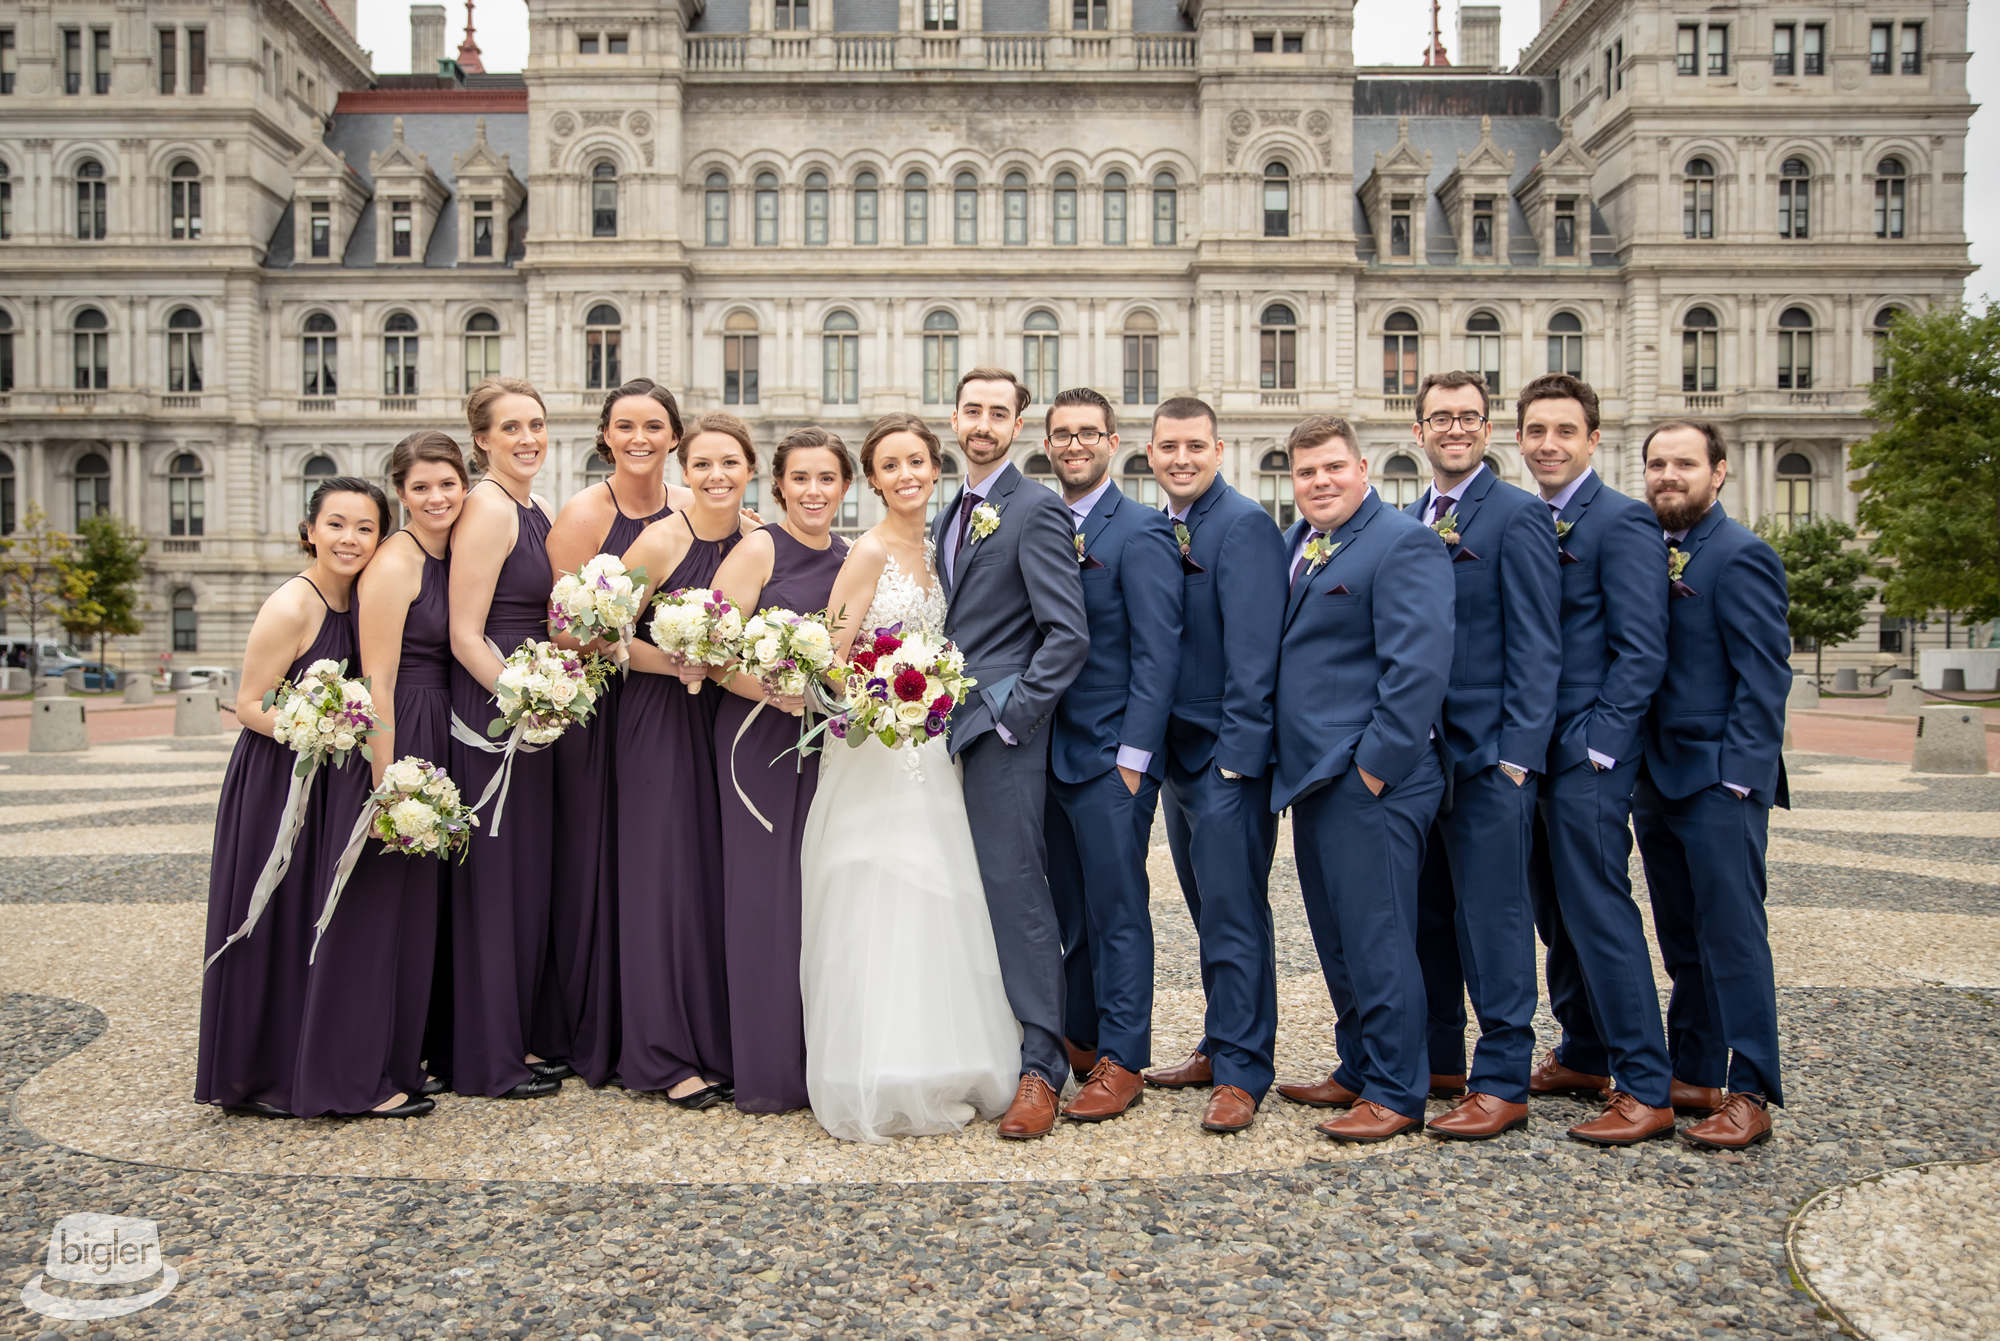 20181006_-_26_-_Michelle_&_Evan_Kiernan_Plaza_Wedding